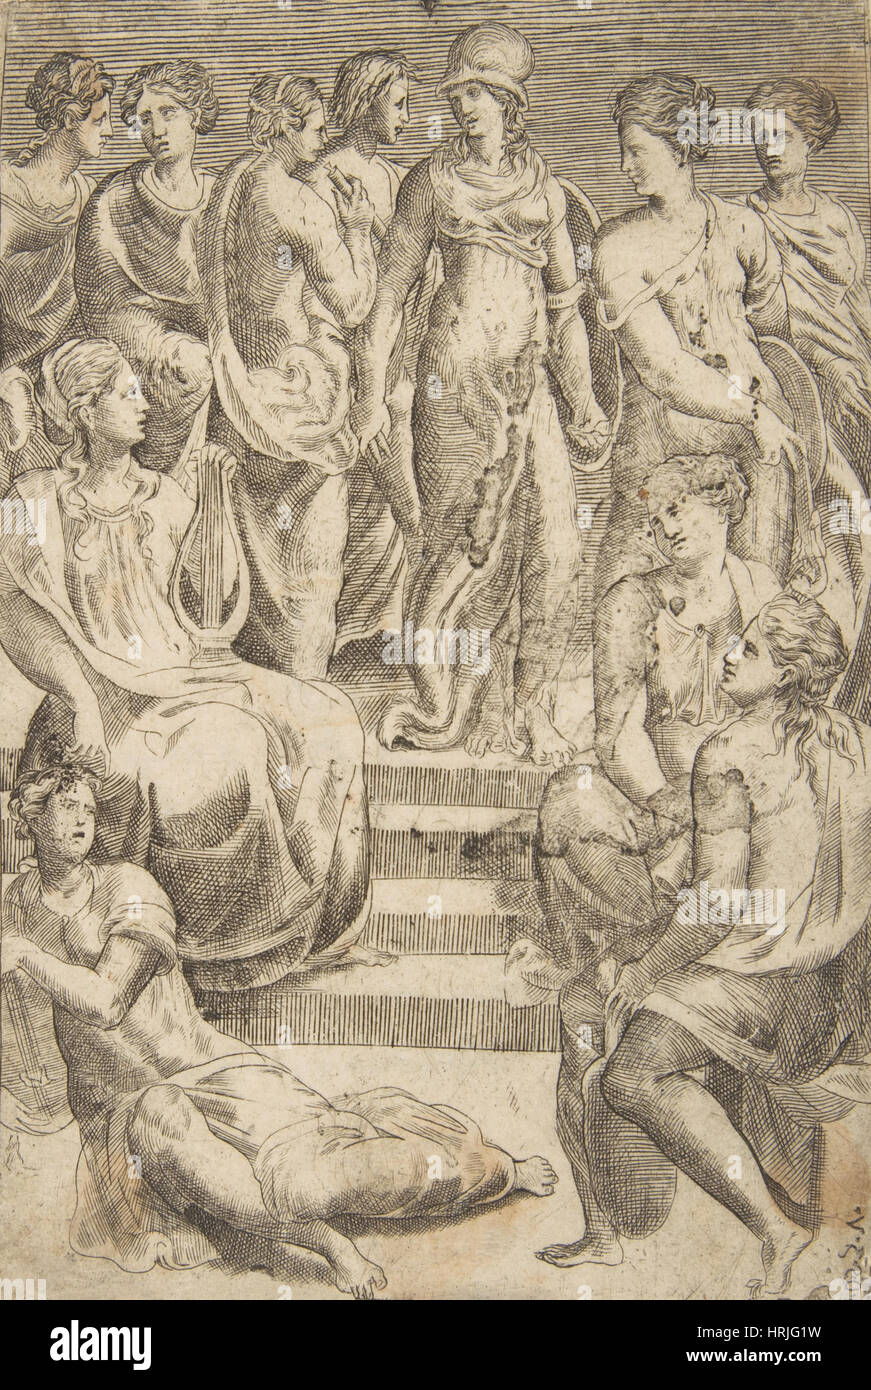 Minerva with the Arts and Sciences - Stock Image